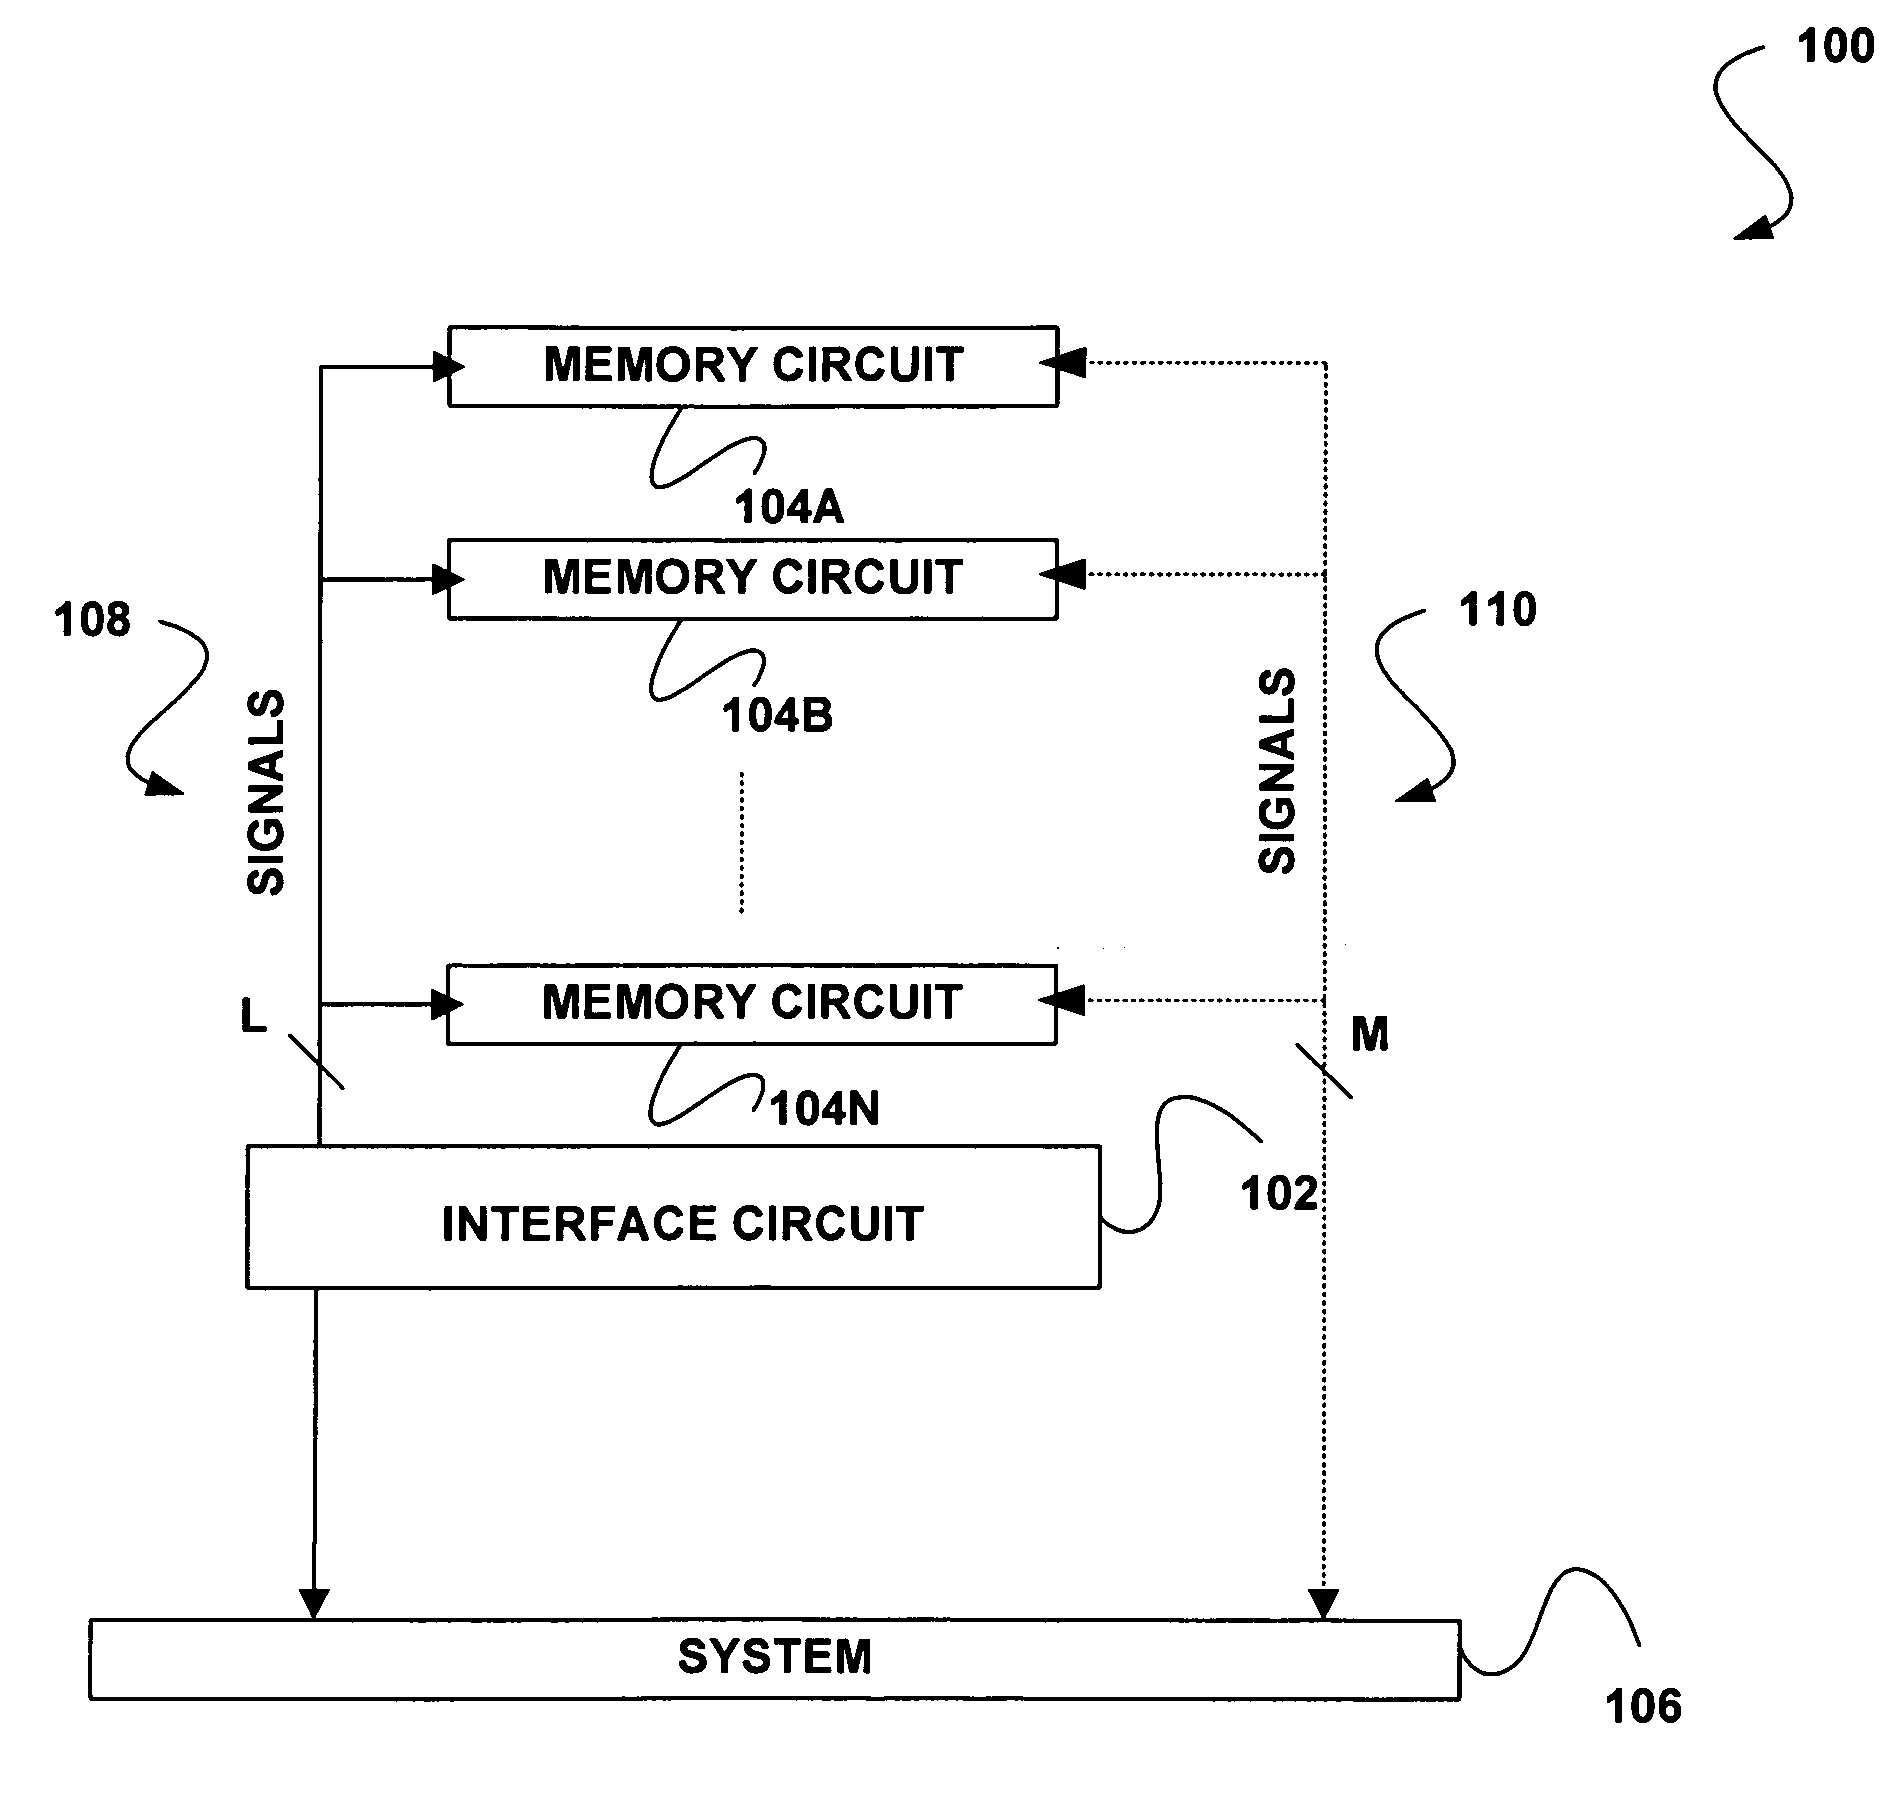 memory system System memory 451 provides types for efficient representation and pooling of managed, stack, and native memory segments and sequences of such segments, along with primitives to parse and format utf-8 encoded text stored in those memory segments.